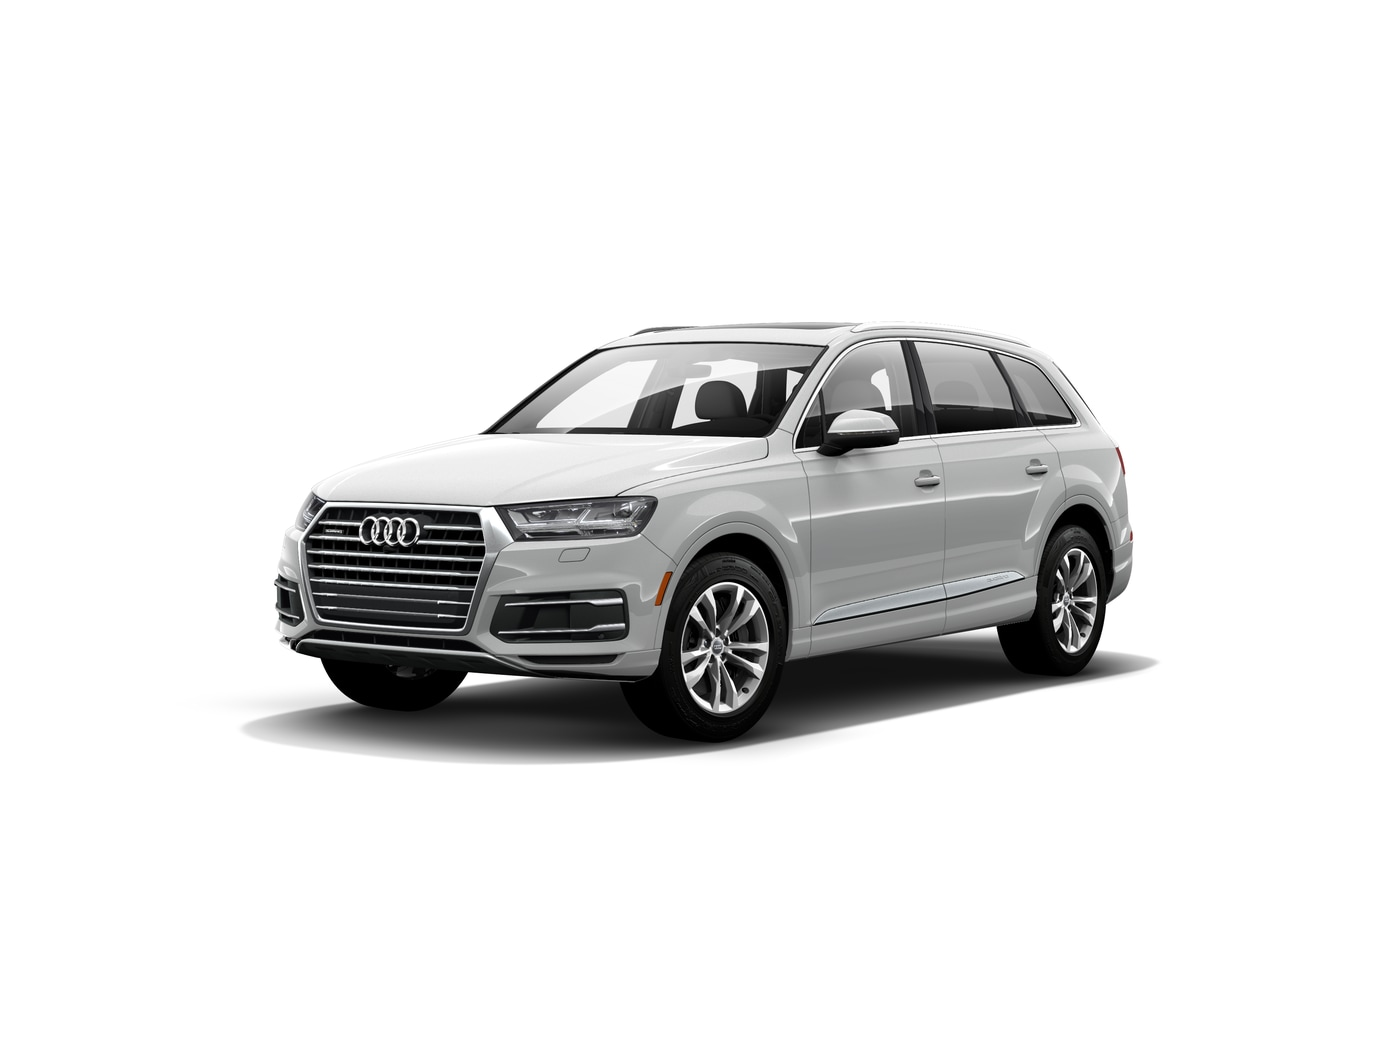 New 2019 Audi Q7 3.0T Premium Plus for sale in Loves Park, IL